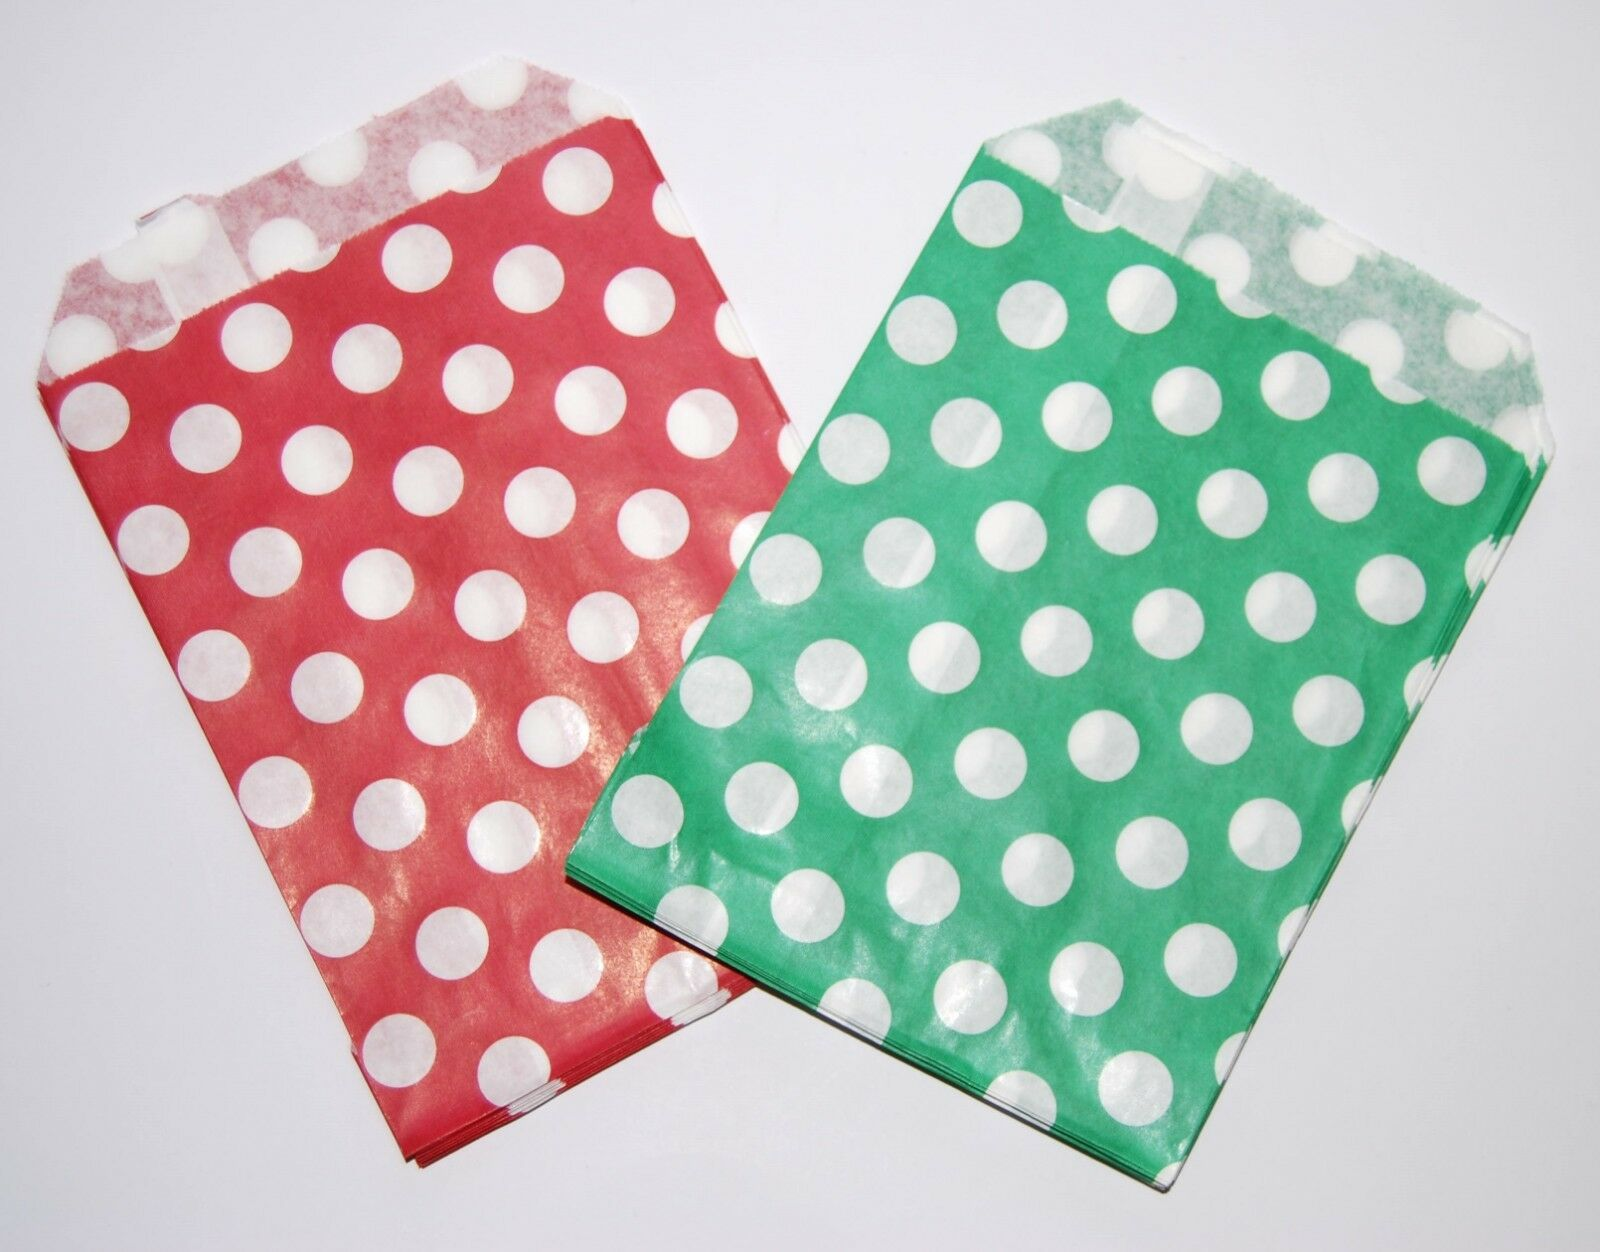 """5/""""x7/""""  PICK AND MIX PAPER BAGS CANDY POLKA DOTS SWEET GIFT PARTY SWEETS"""